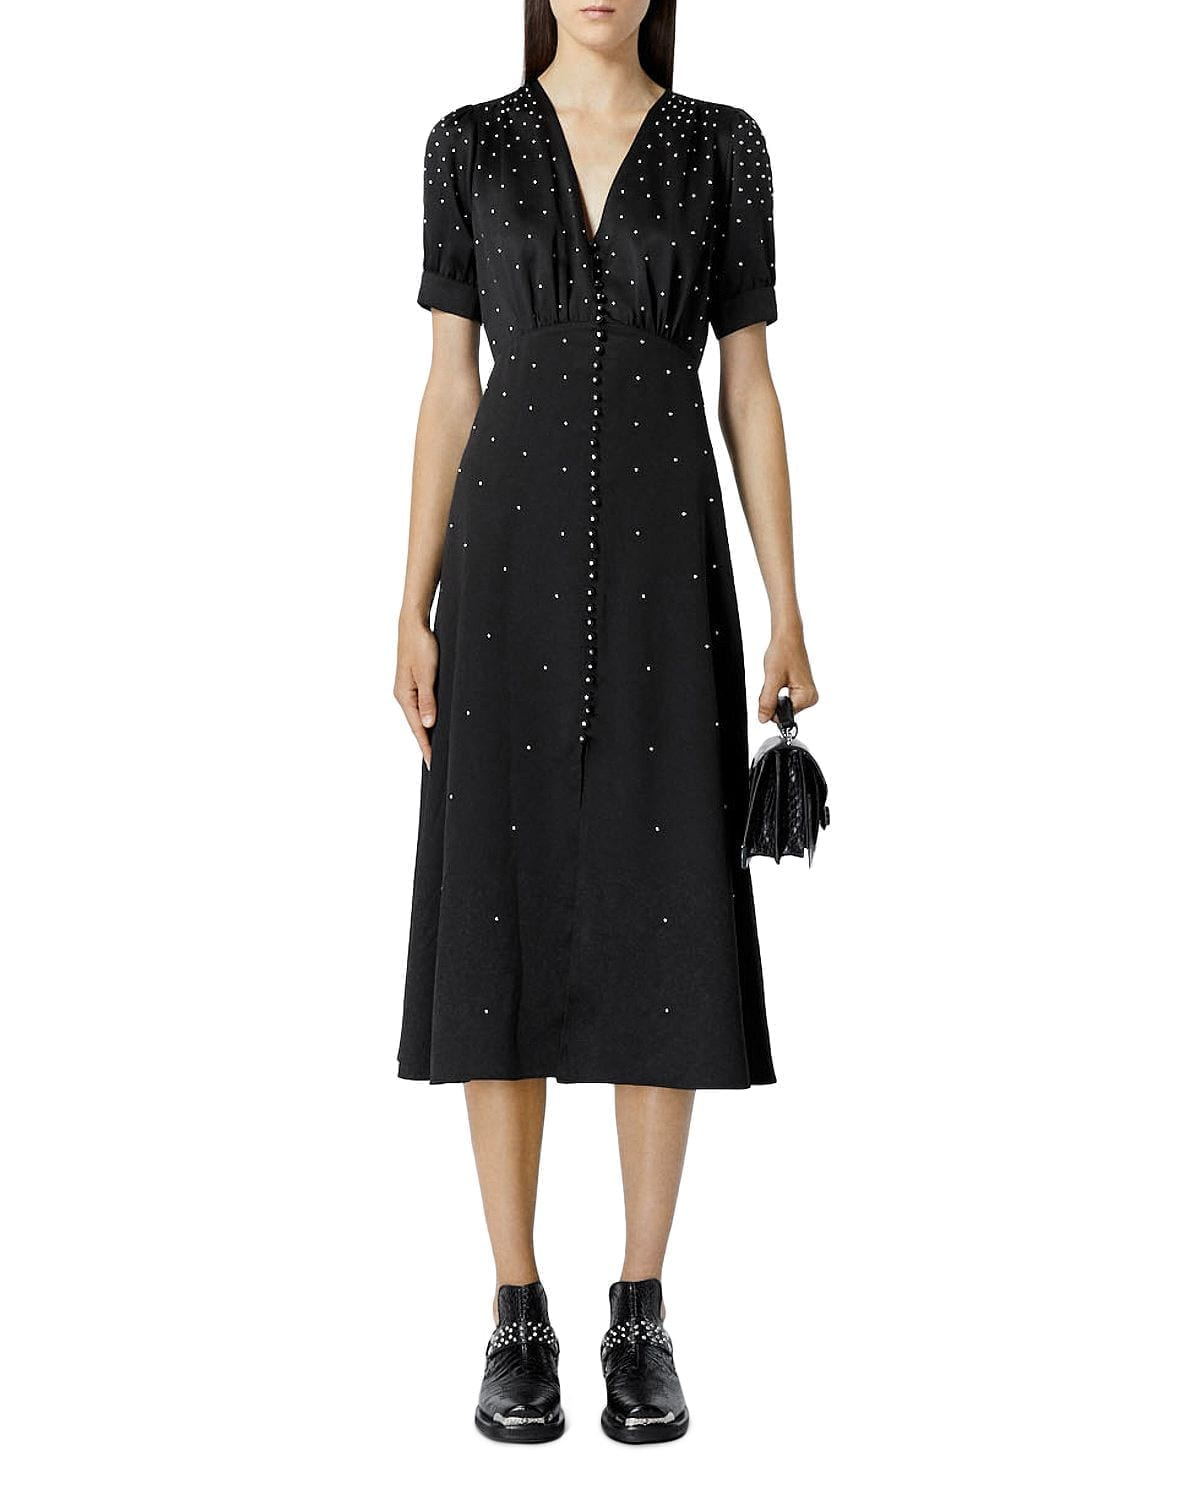 THE KOOPLES Studded Midi Dress